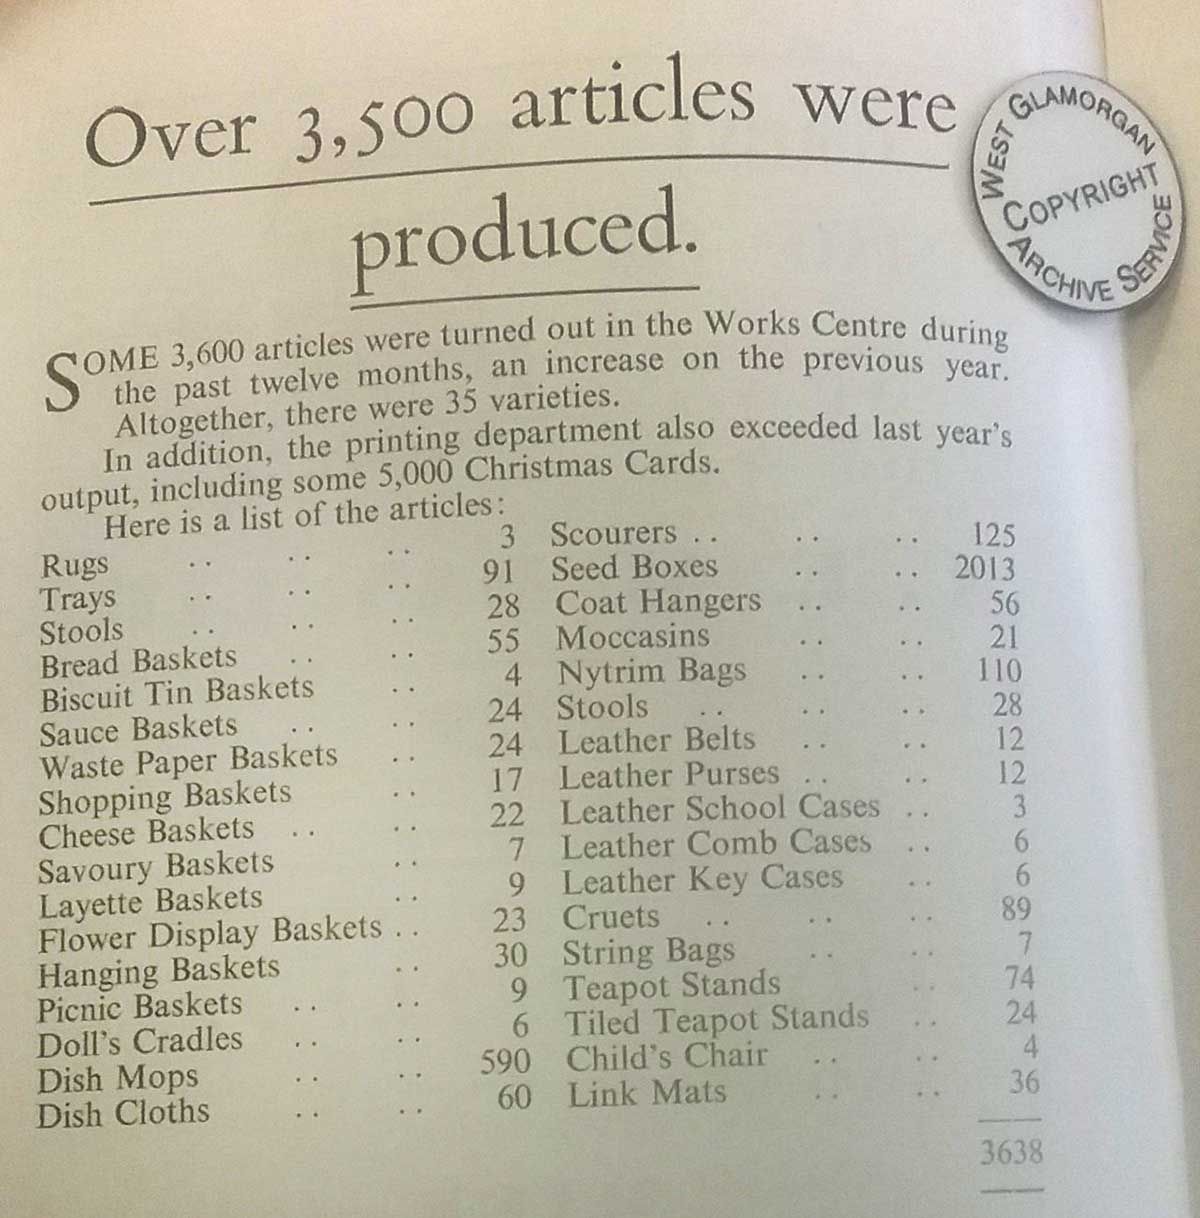 Association Year Book 1962 lists the selection of articles made in the Work Centre